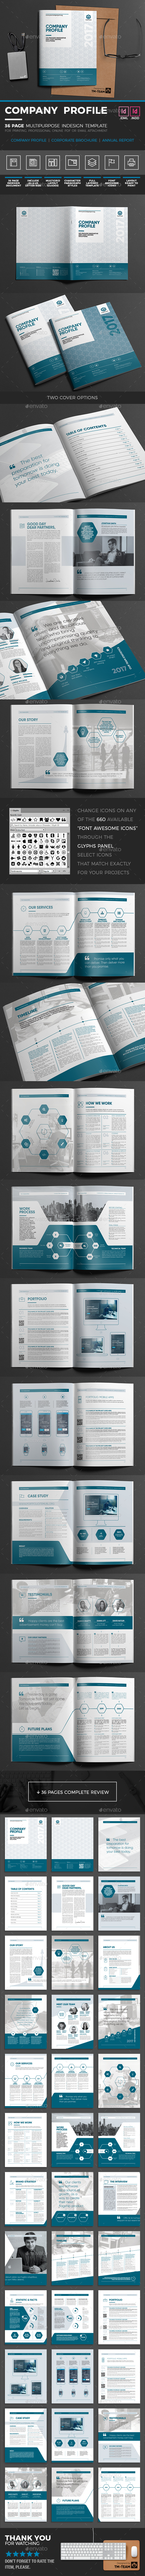 IT Company Profile - 36 Page Indesign Template - Corporate Brochures